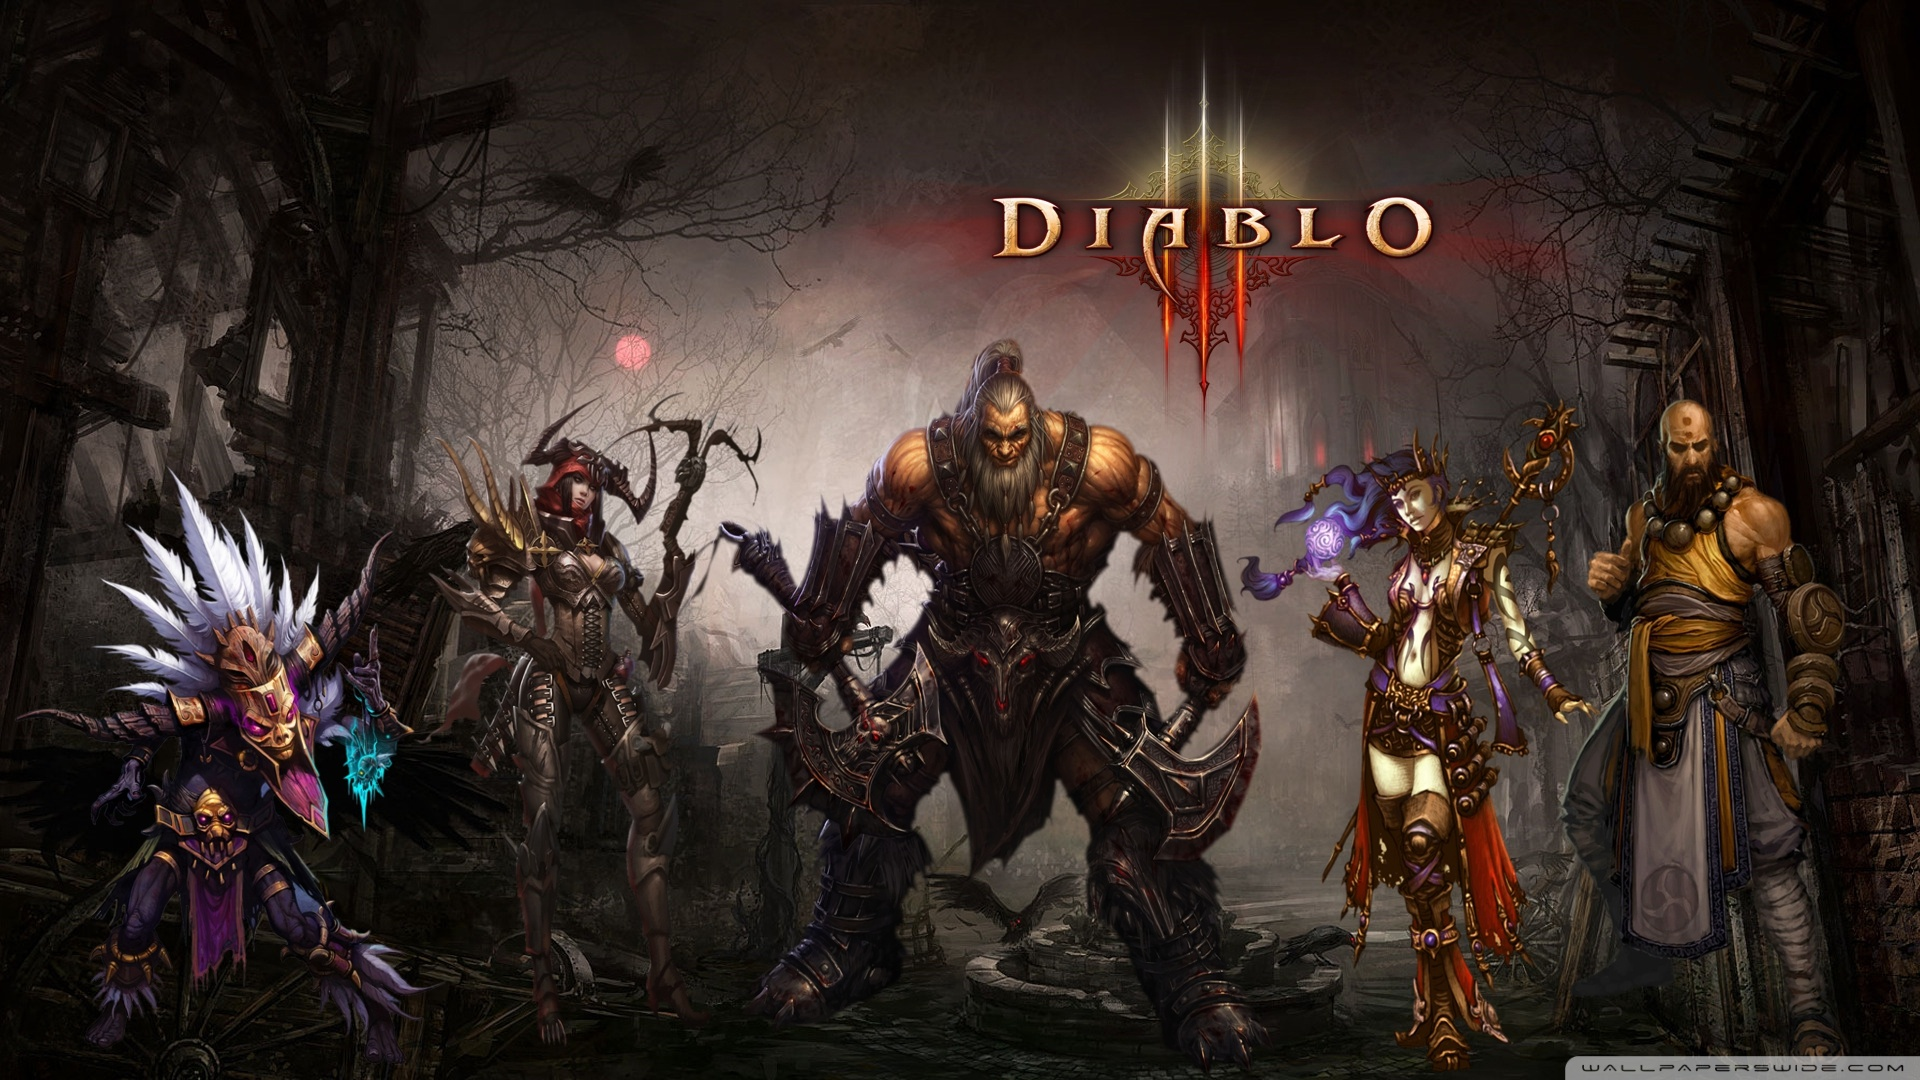 Diablo-HD-free-download-%C3%97-Diablo-HD-wallpaper-wpc5804118